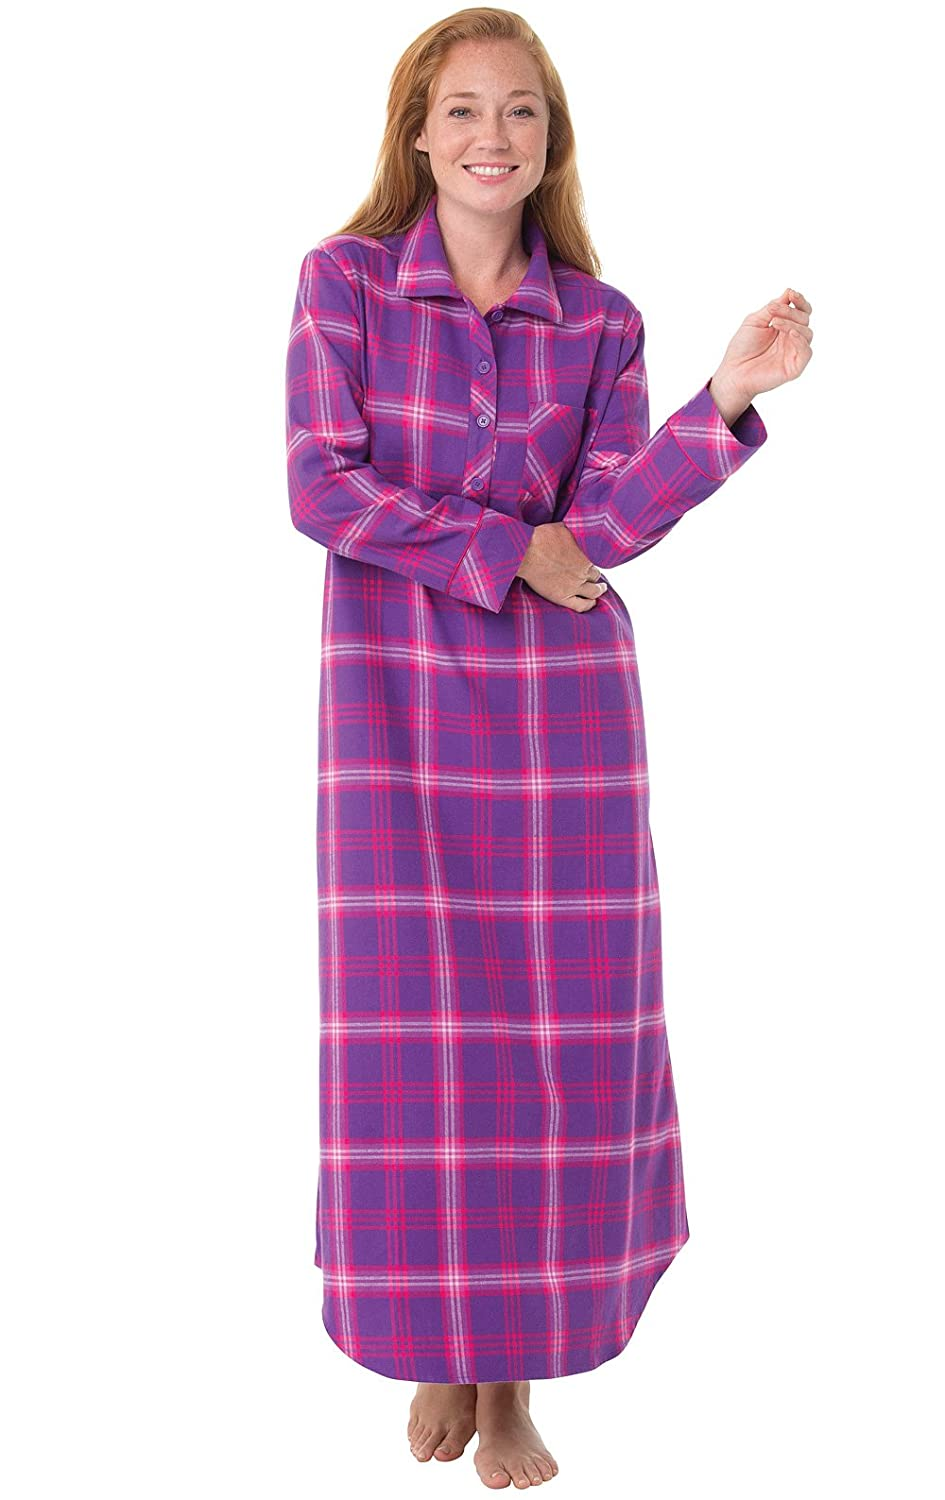 Plus Size Flannel Nightgowns for Women: Cozy and Soft!